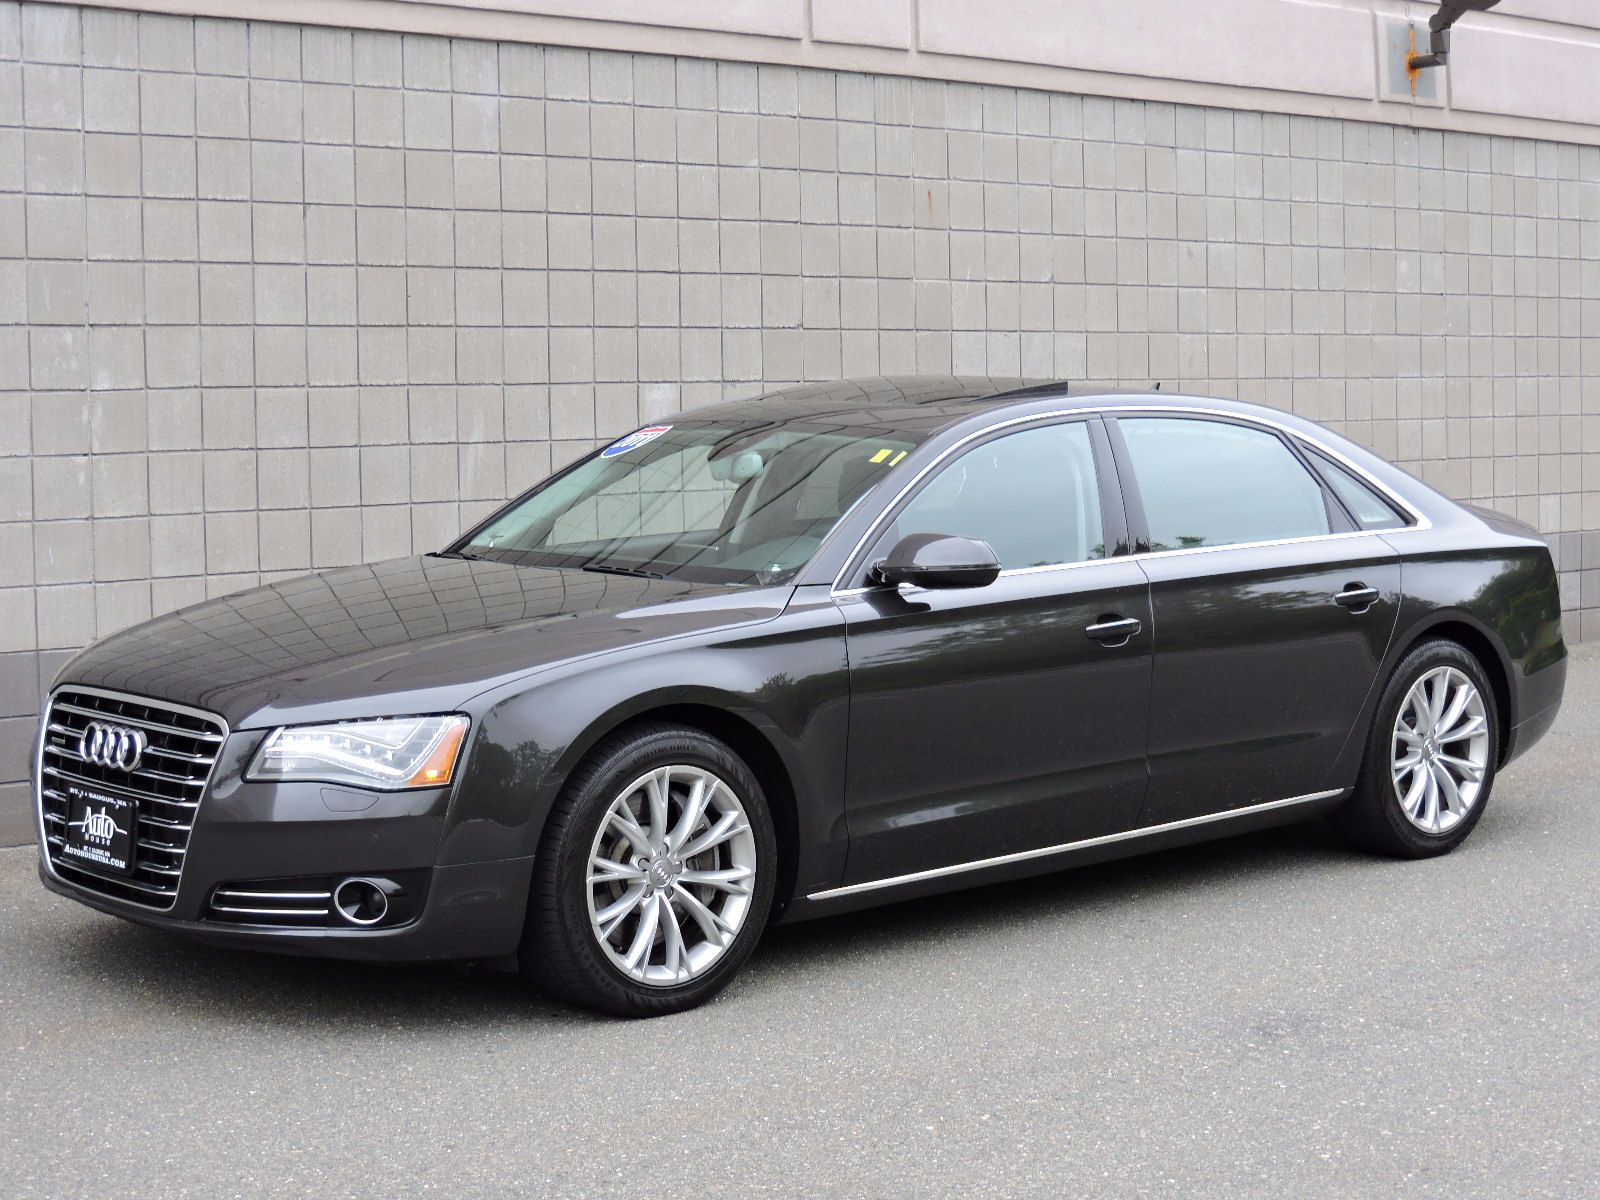 used 2011 audi a8 l at auto house usa saugus. Black Bedroom Furniture Sets. Home Design Ideas